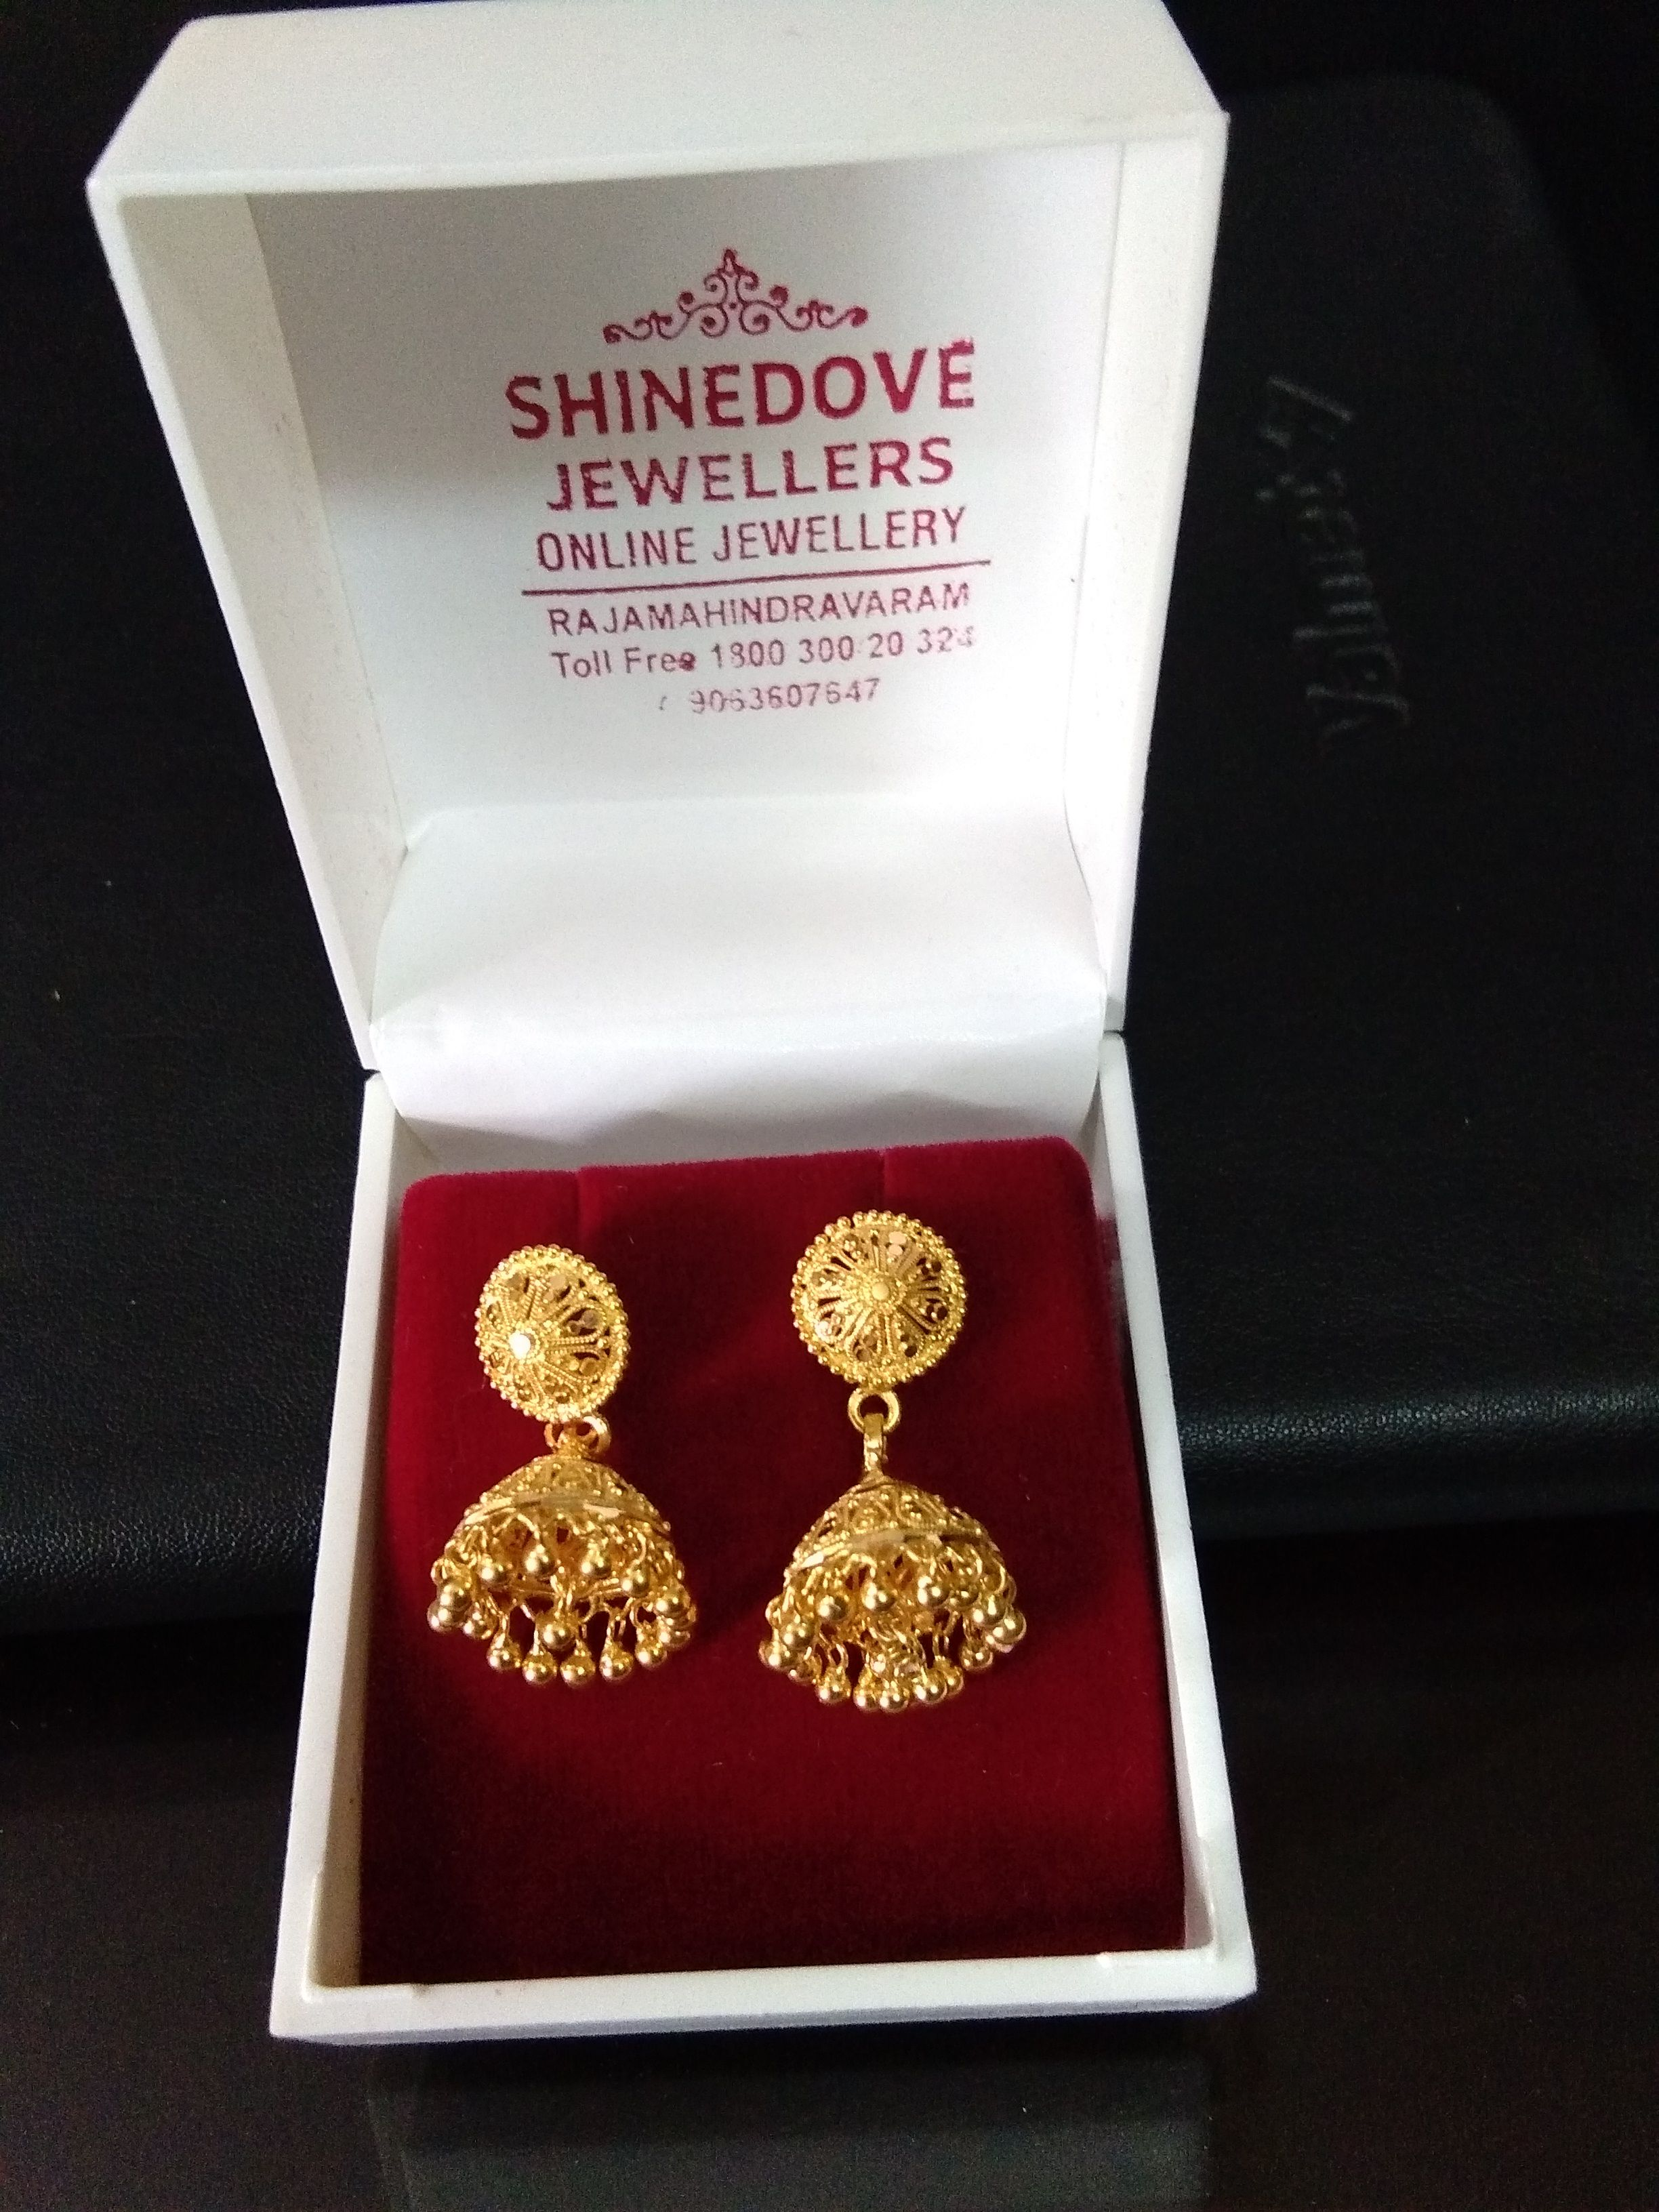 Ready For Sale Gold Buttalu Pure Handmade 916 Kdm Hallmark Gold Earrings Weight 8 Grams Cod Card Gold Earrings Gold Buttalu Online Jewelry